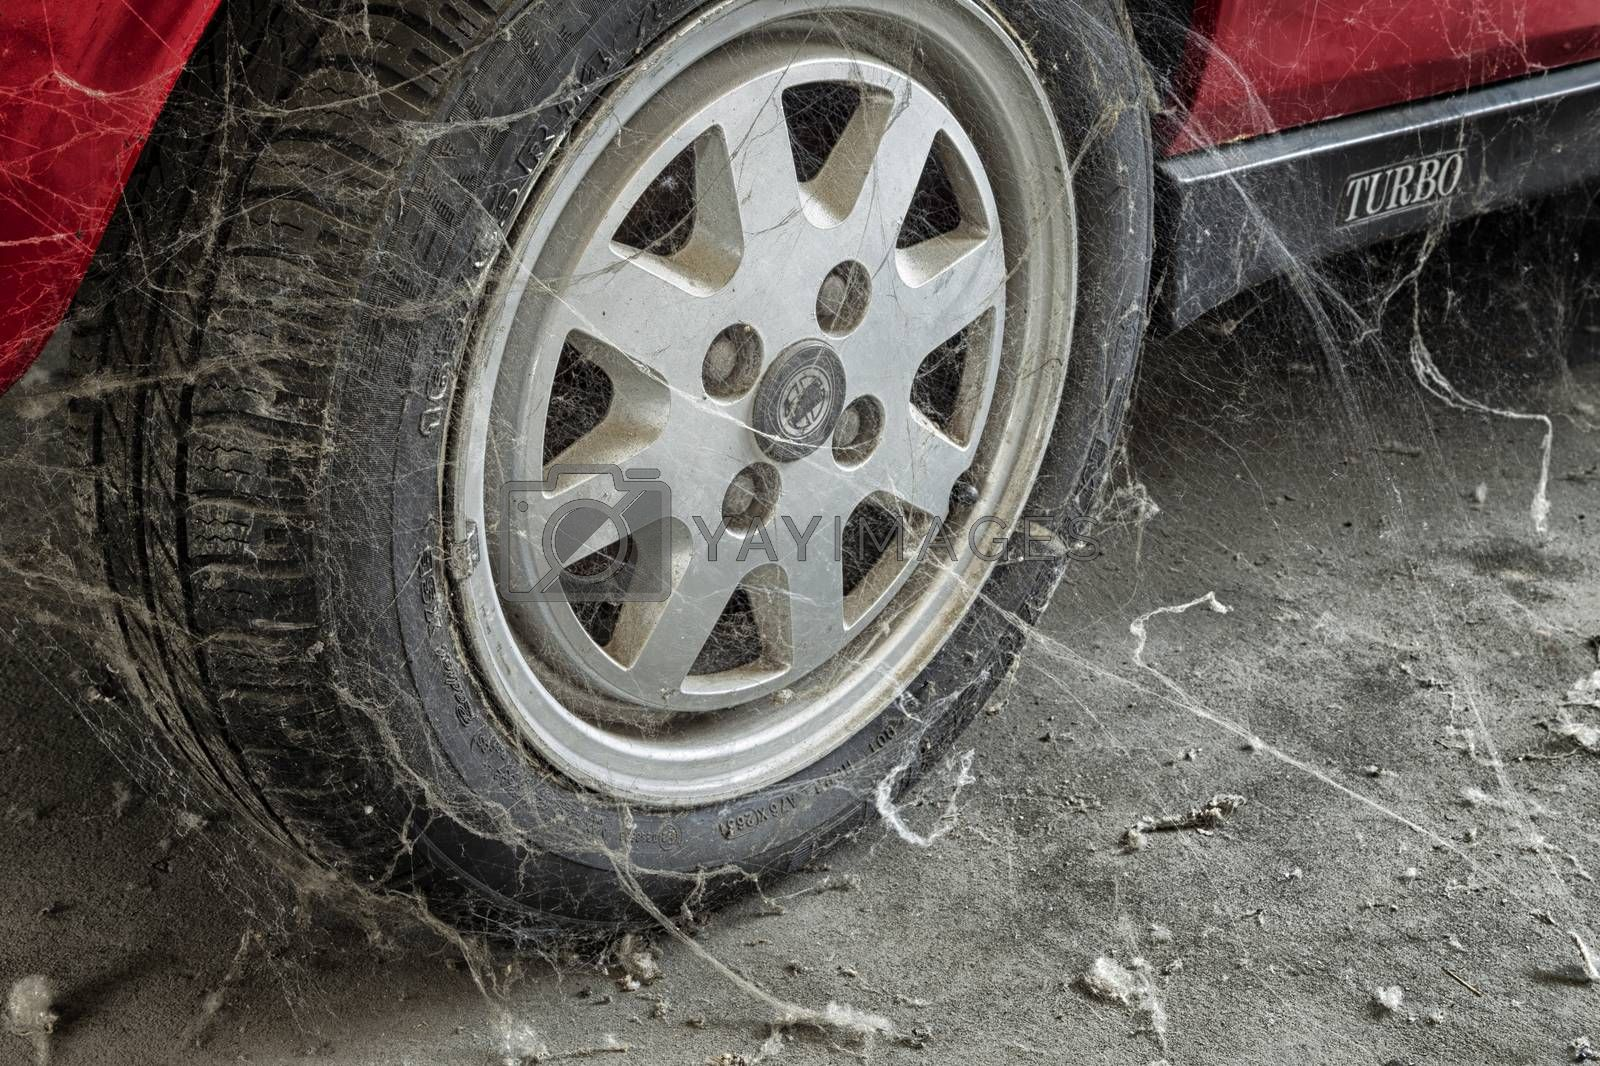 A 80���s car tire among cobwebs and dust